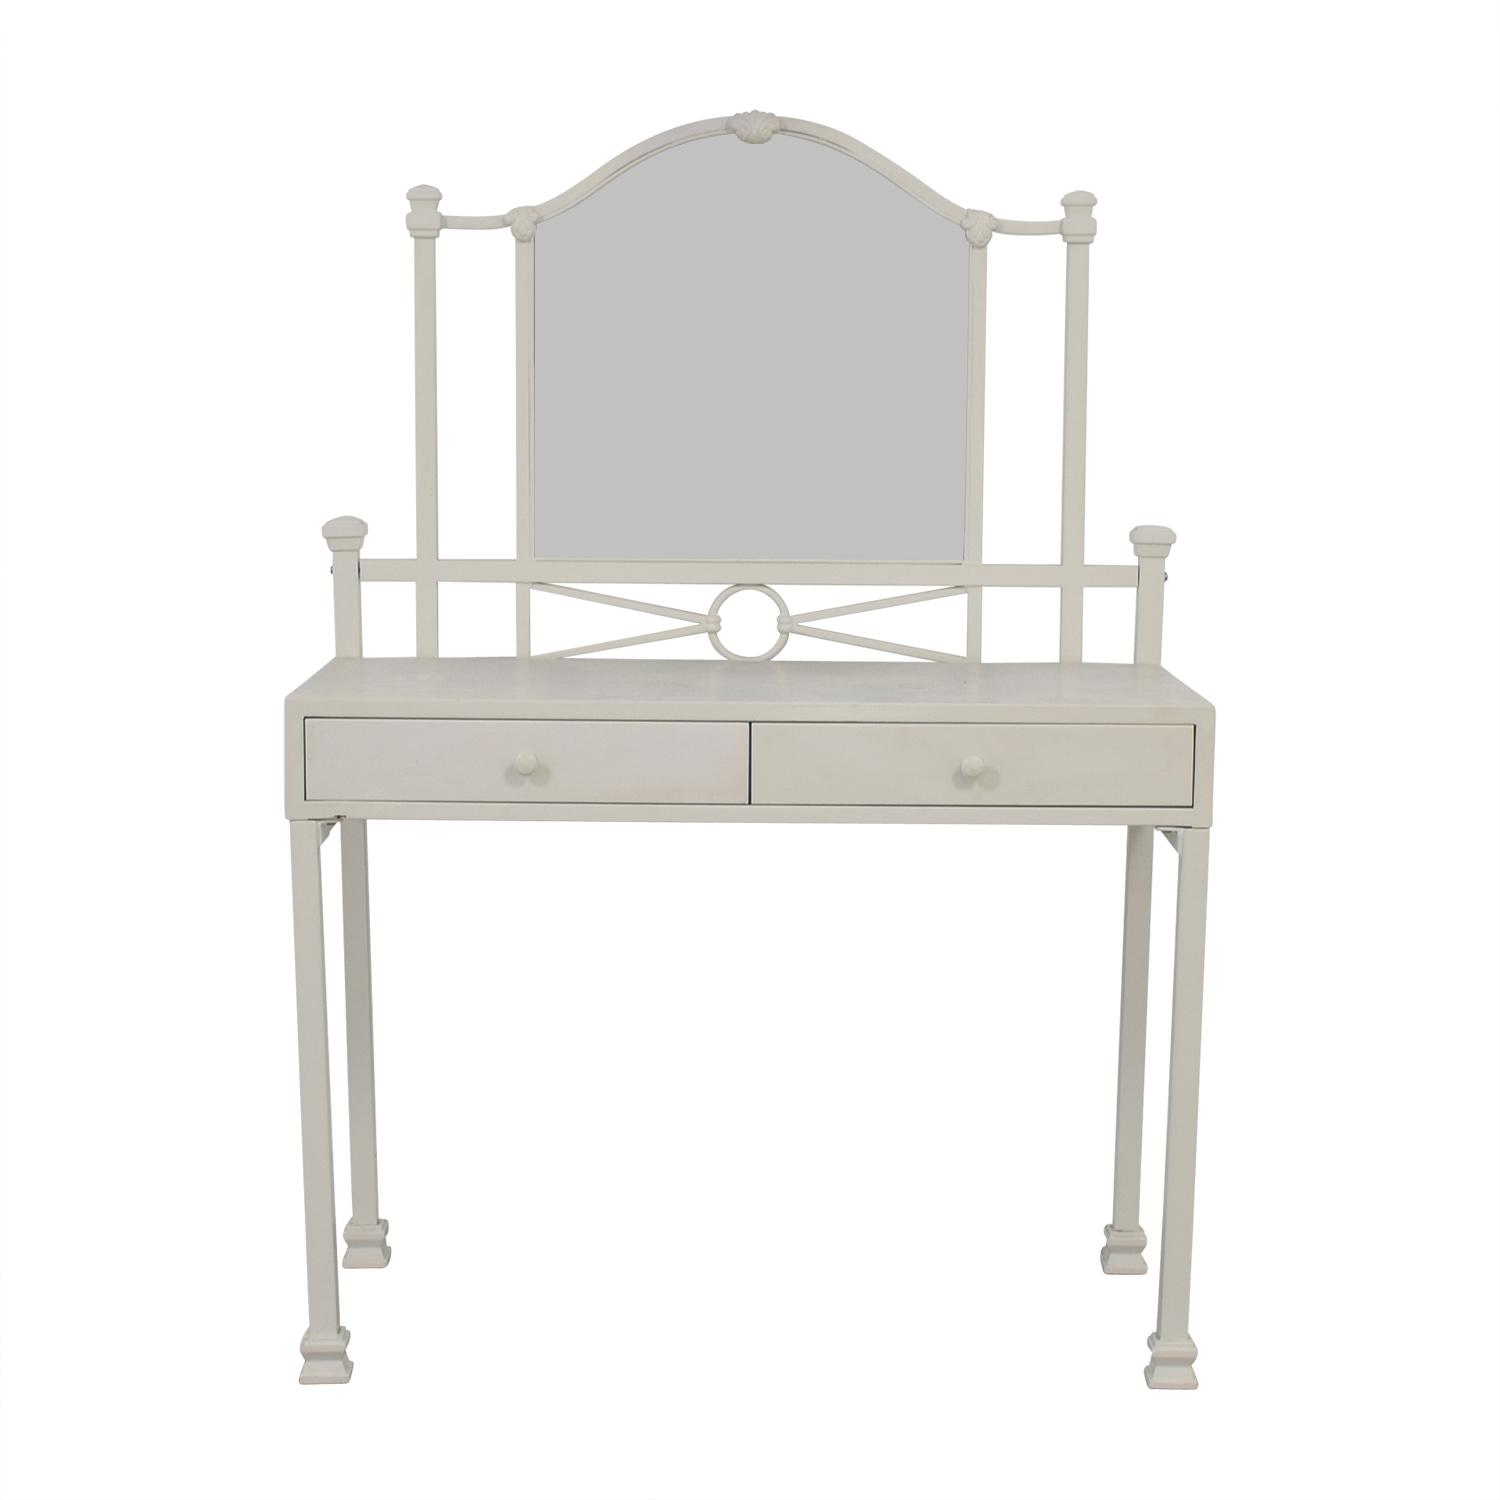 Pottery Barn Pottery Barn Teen Meadow White Two-Drawer Vanity Table nj